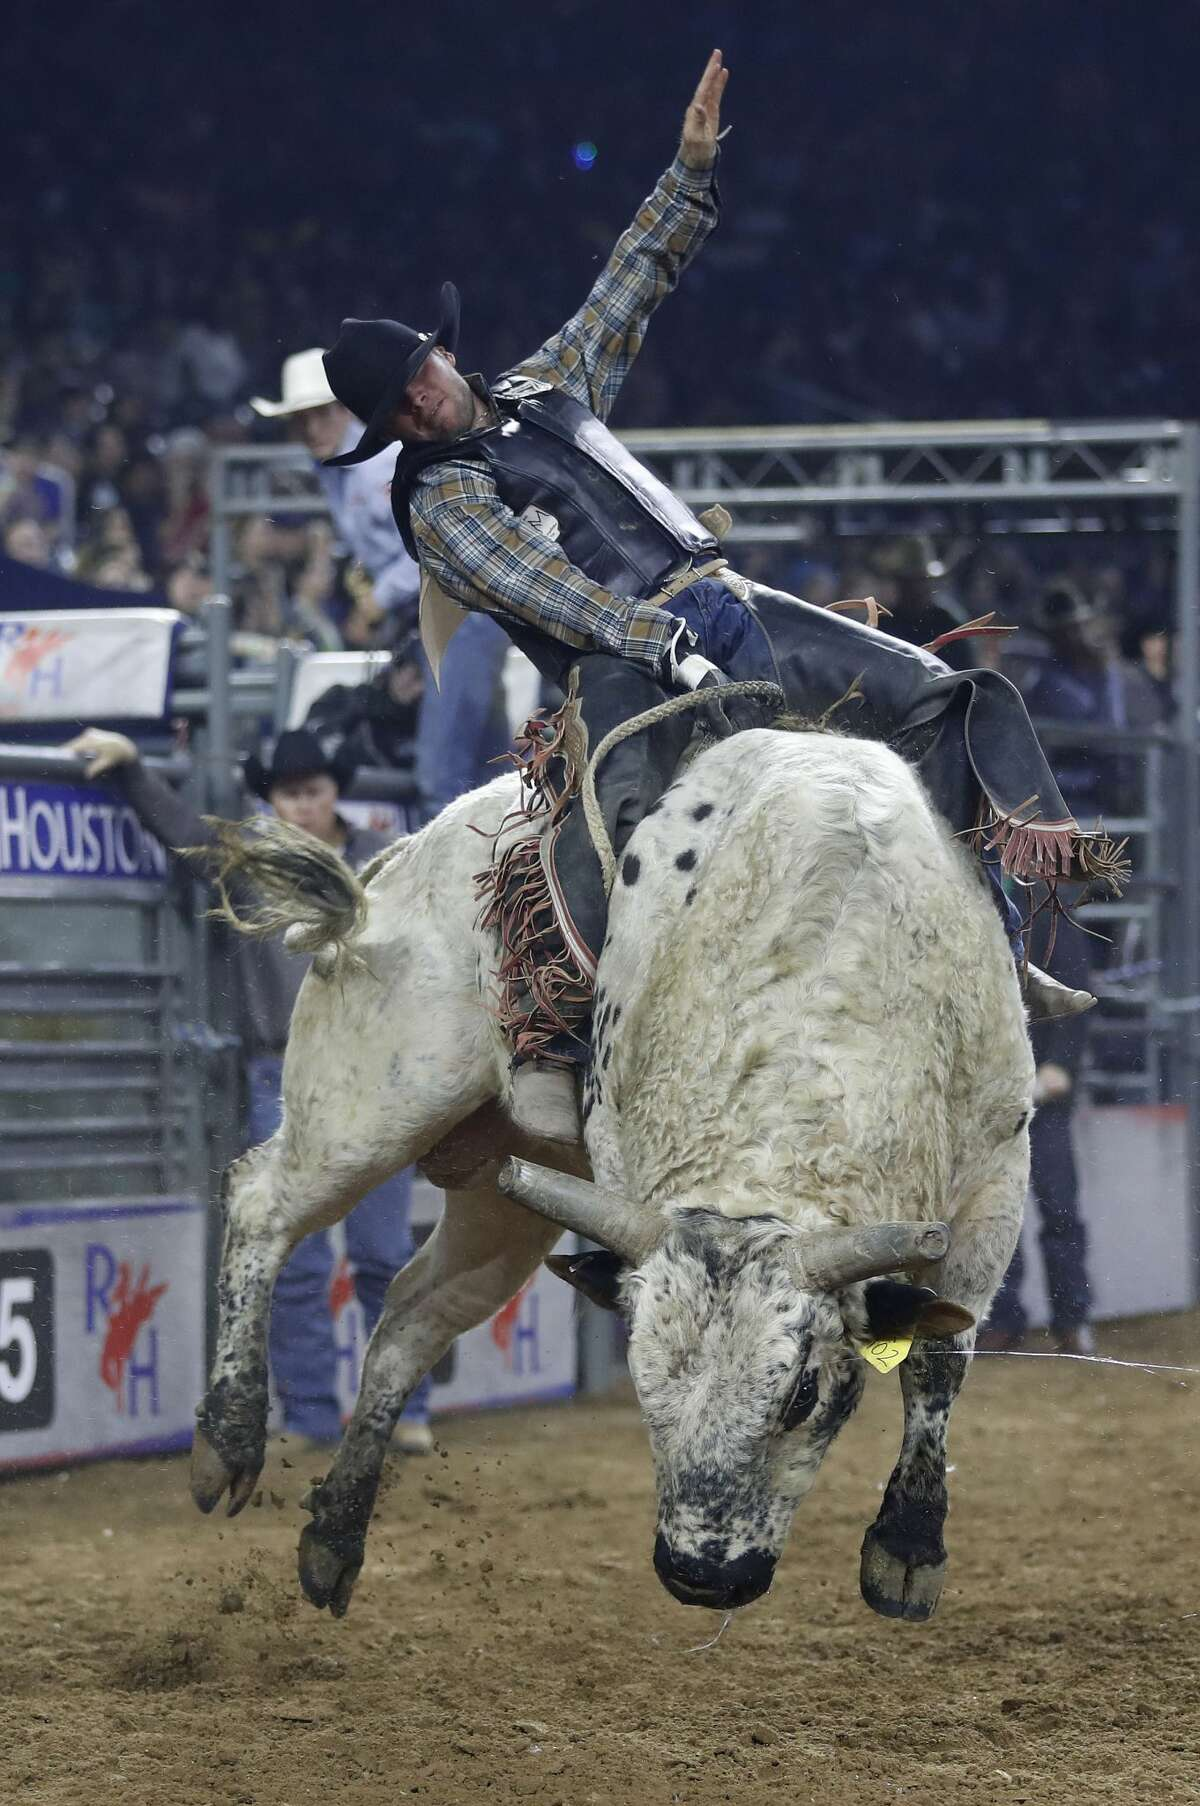 Bayle Worden rides Redneck in the bull riding competition during the Super Series IV, round 2, at NRG Stadium, Friday, March 17, 2017, at the Houston Livestock Show and Rodeo, in Houston. ( Karen Warren / Houston Chronicle )